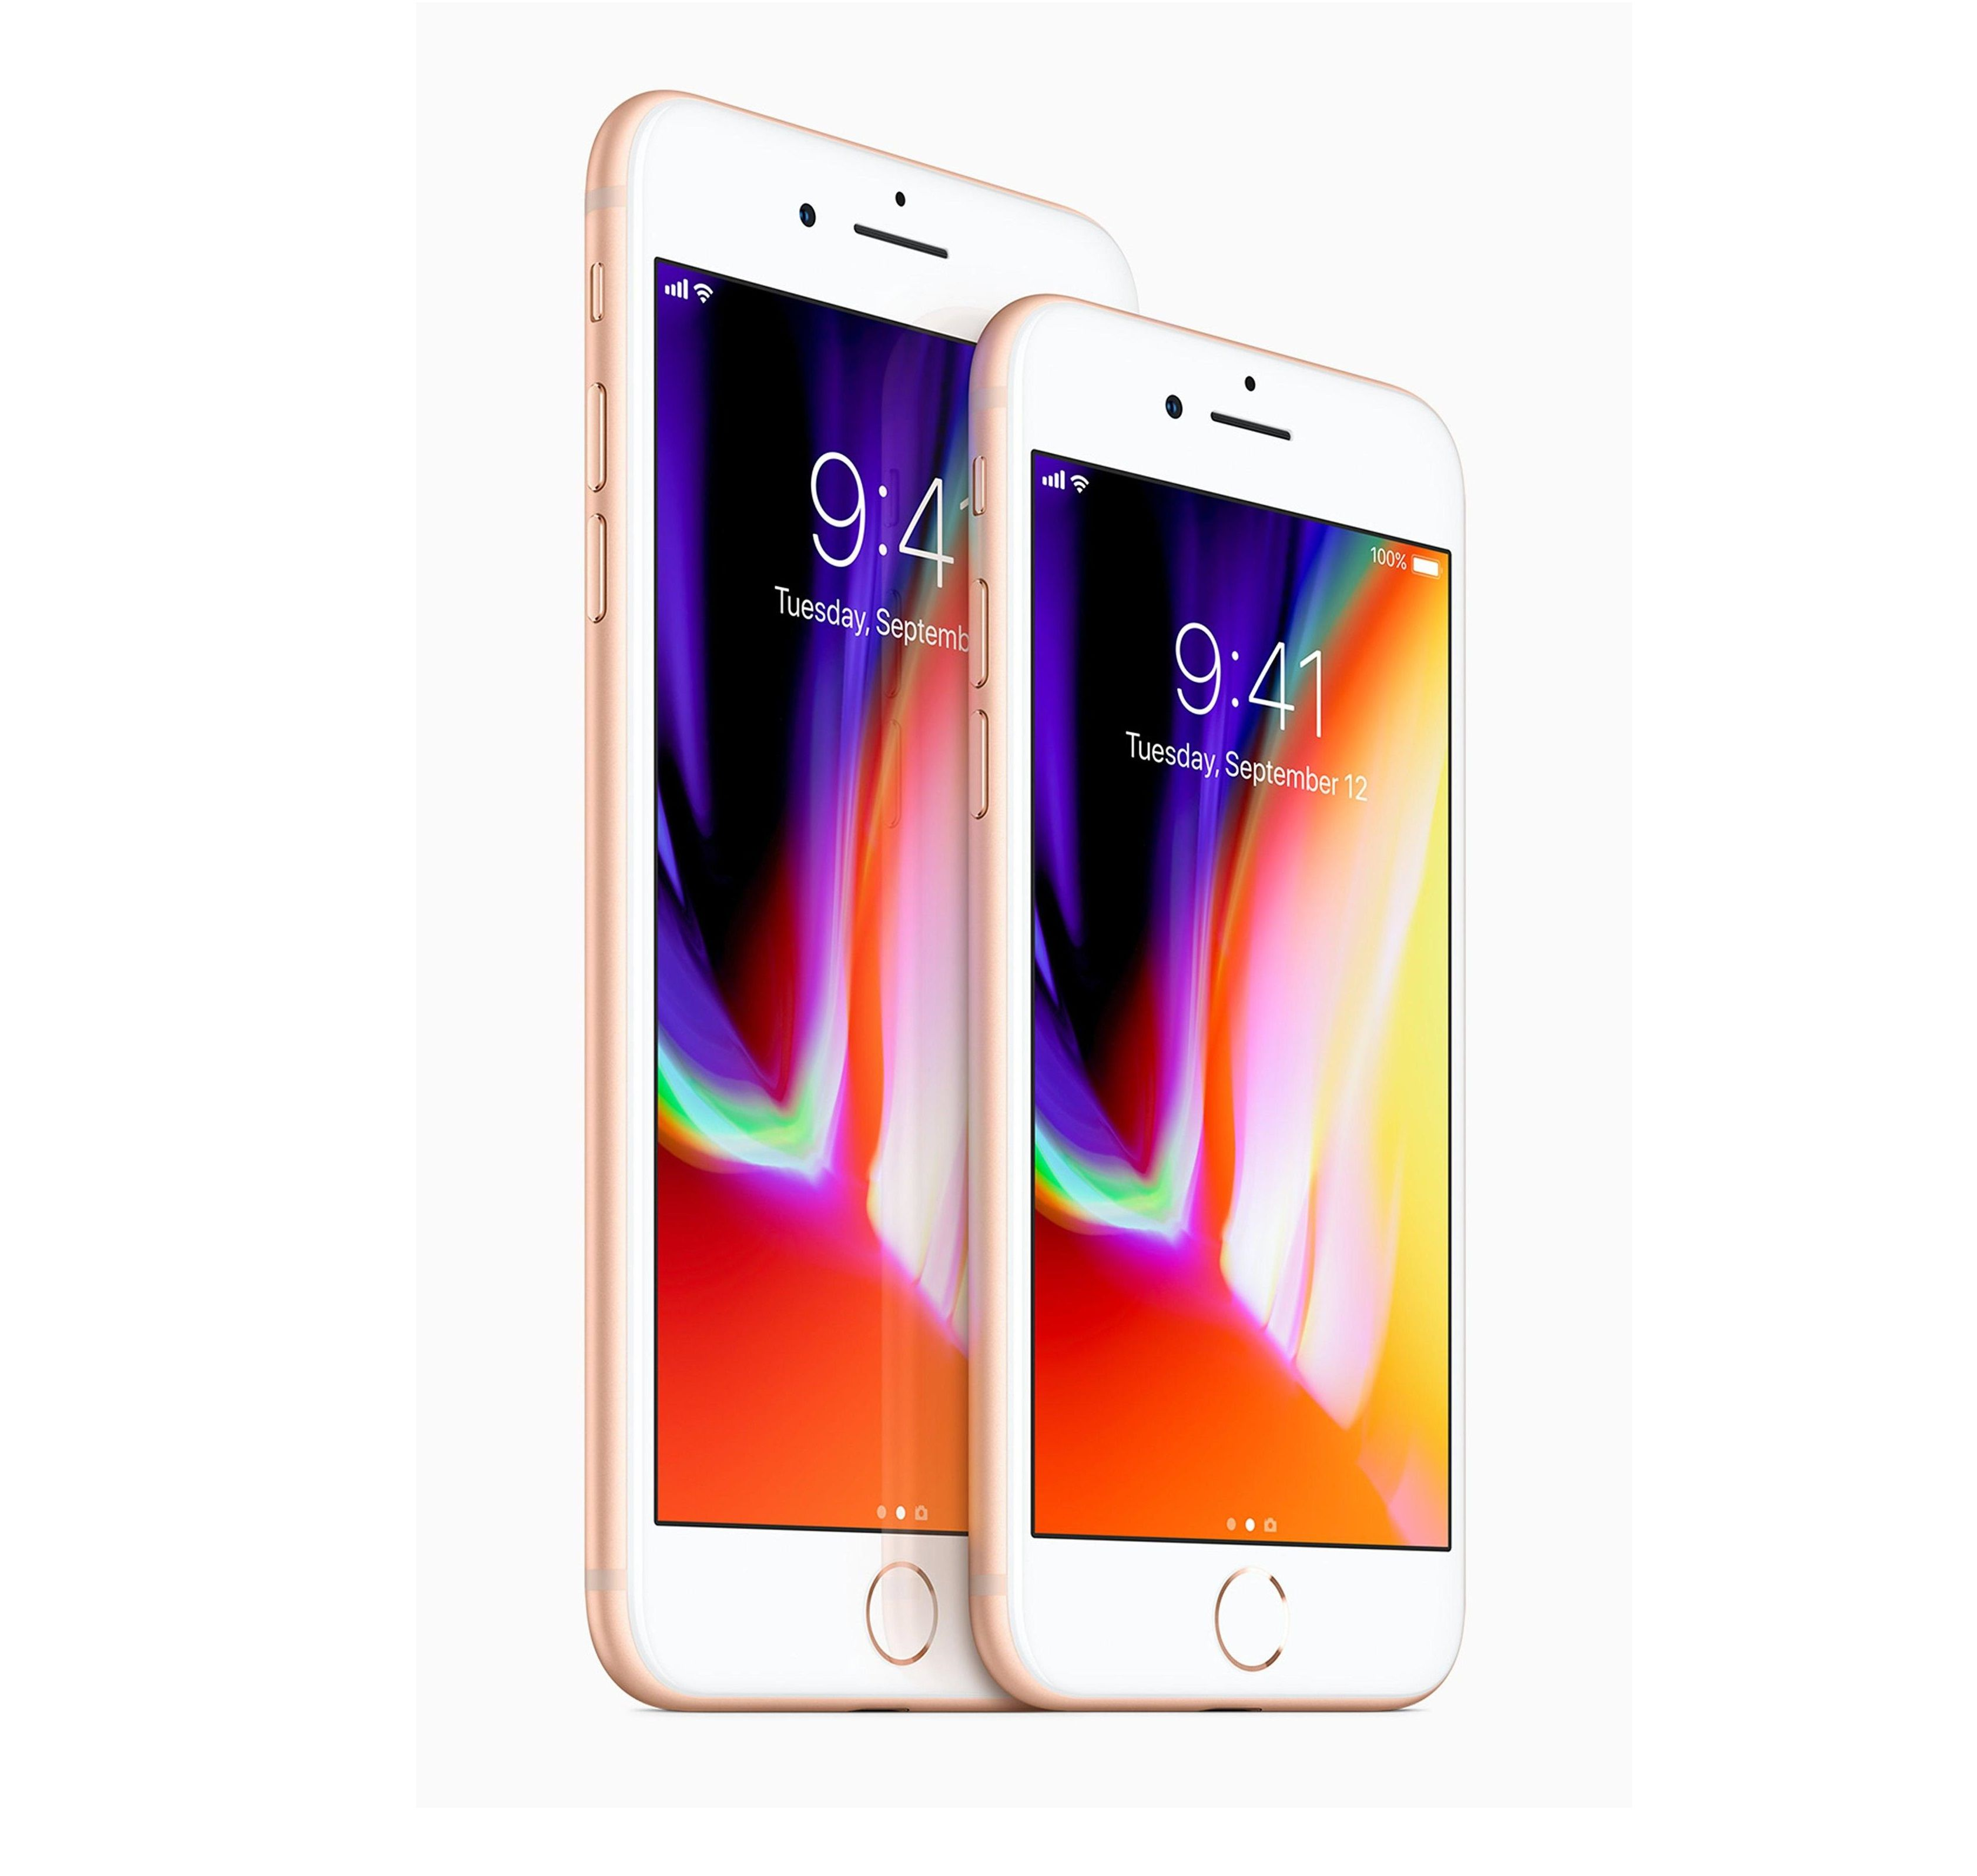 Apple launch iPhone 8 and iPhone 8 Plus